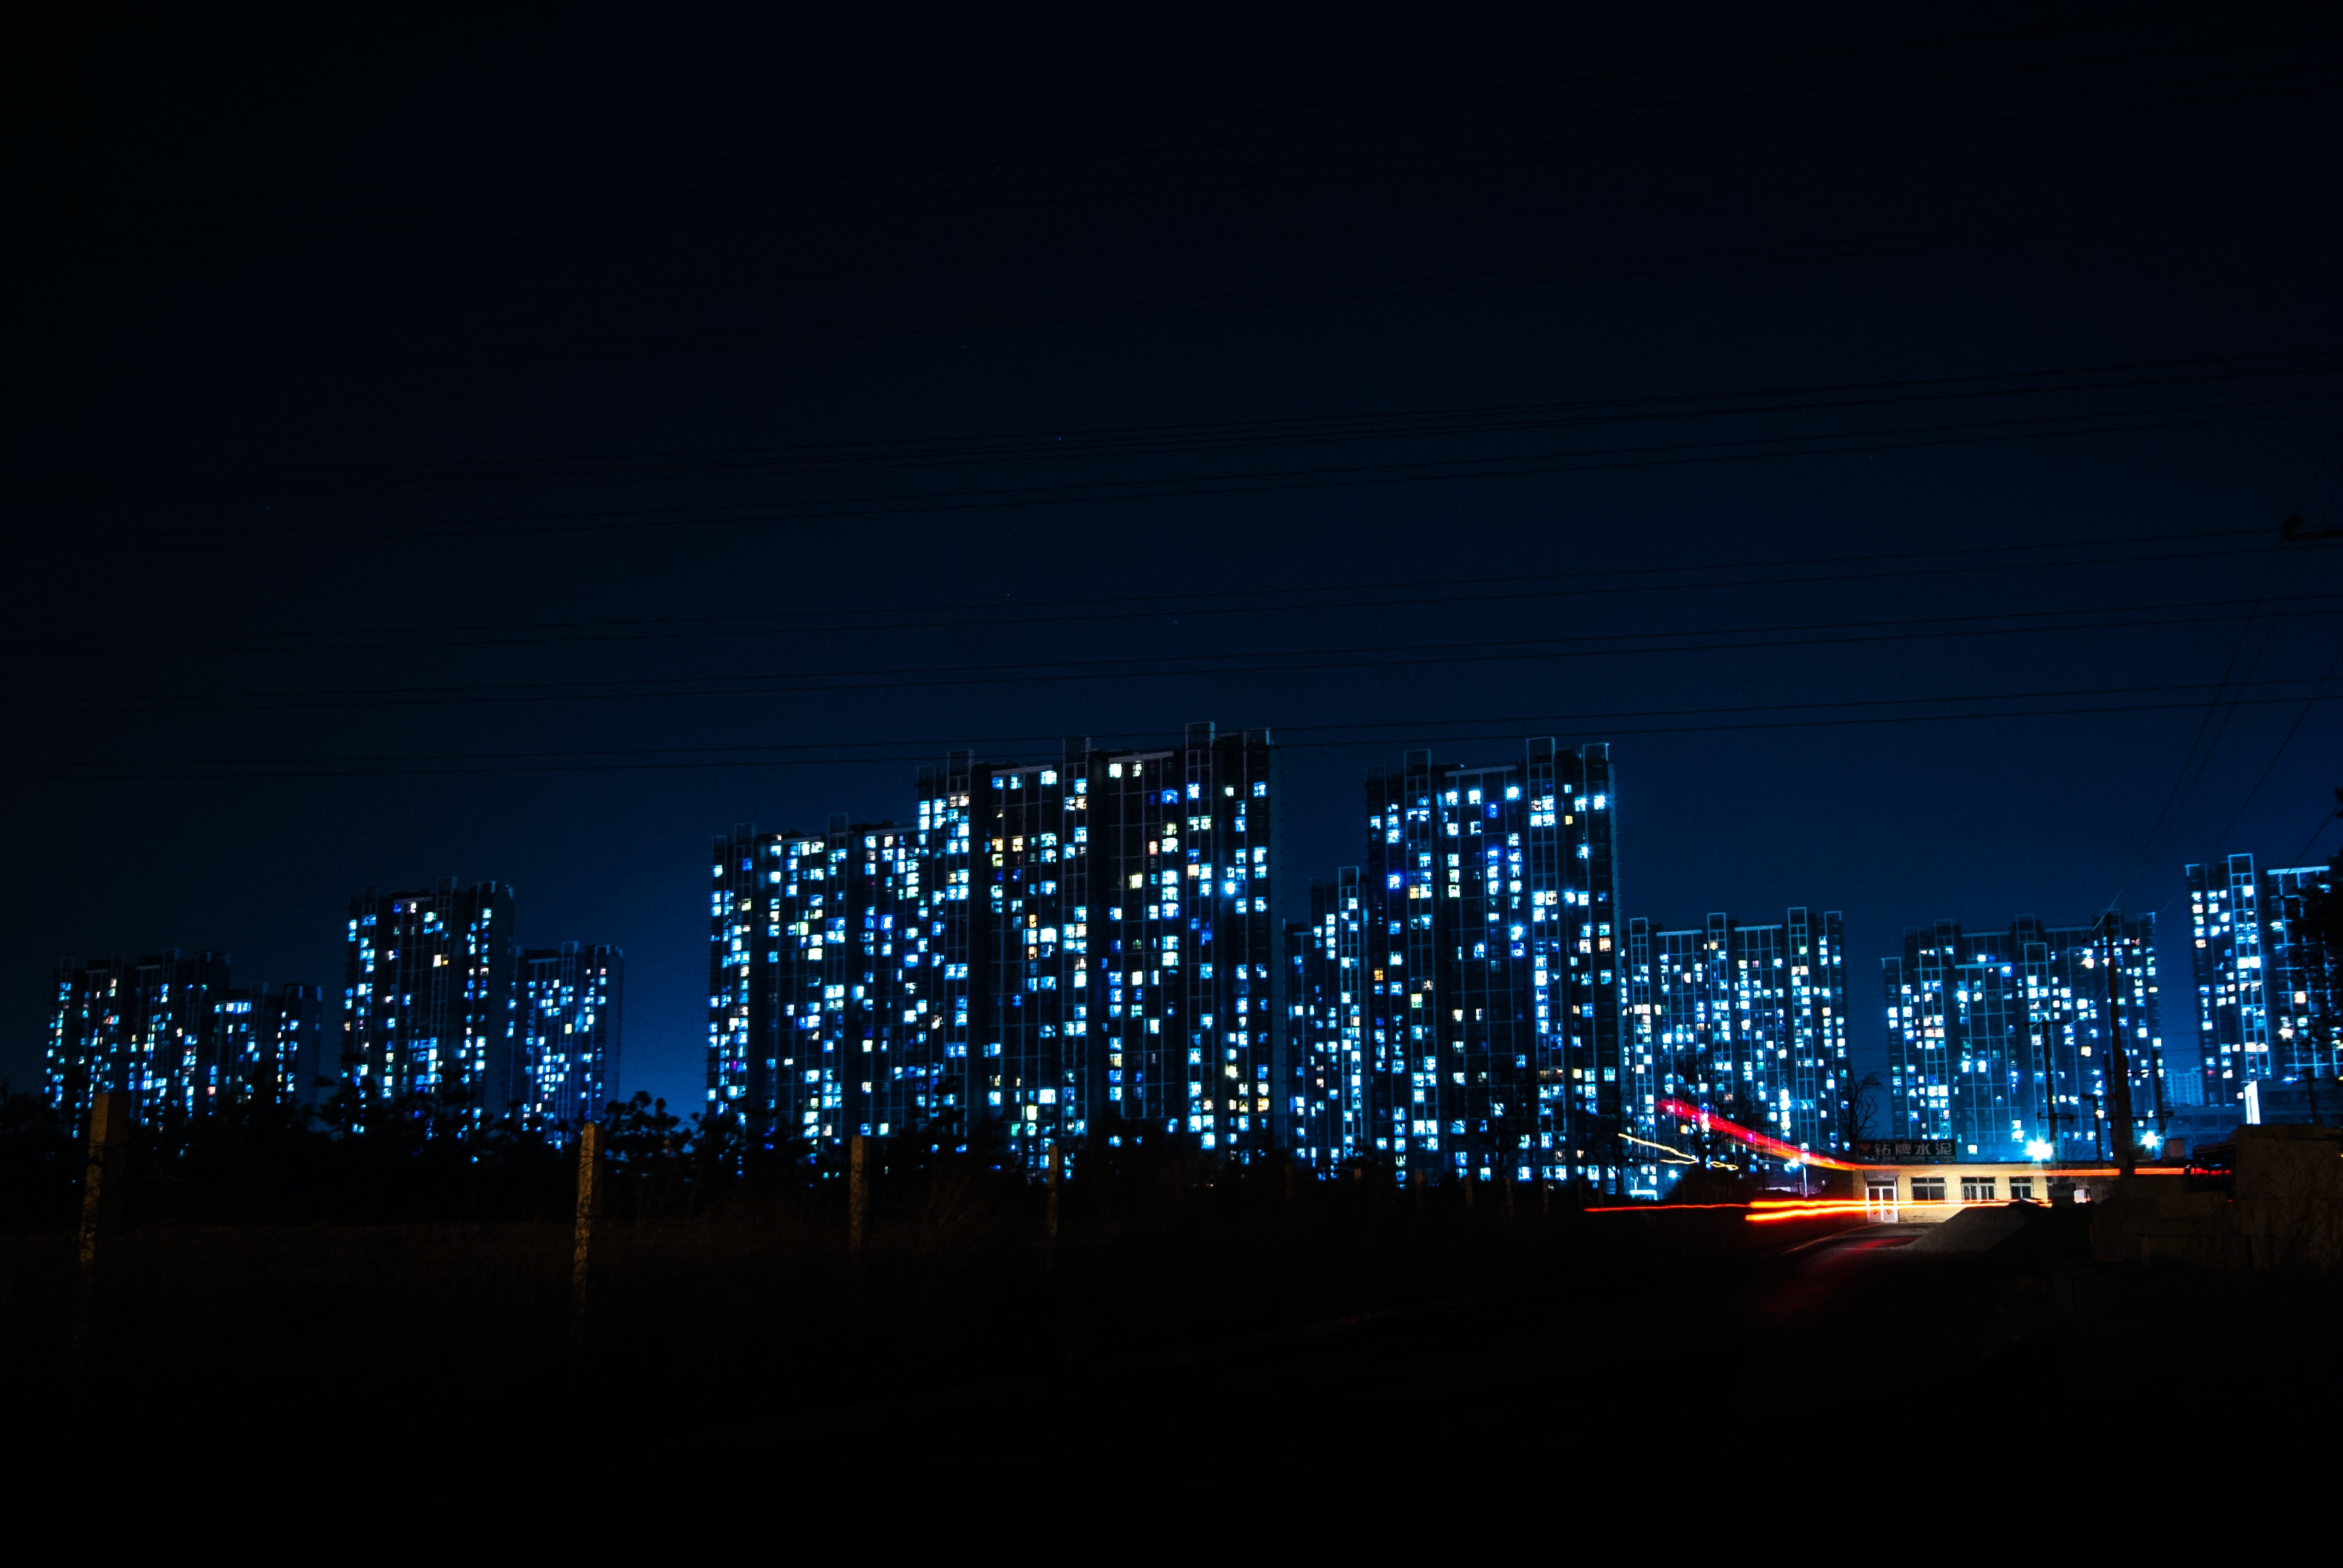 An illuminated city with more than half a dozen large buildings and skyscrapers with blue lights in the background